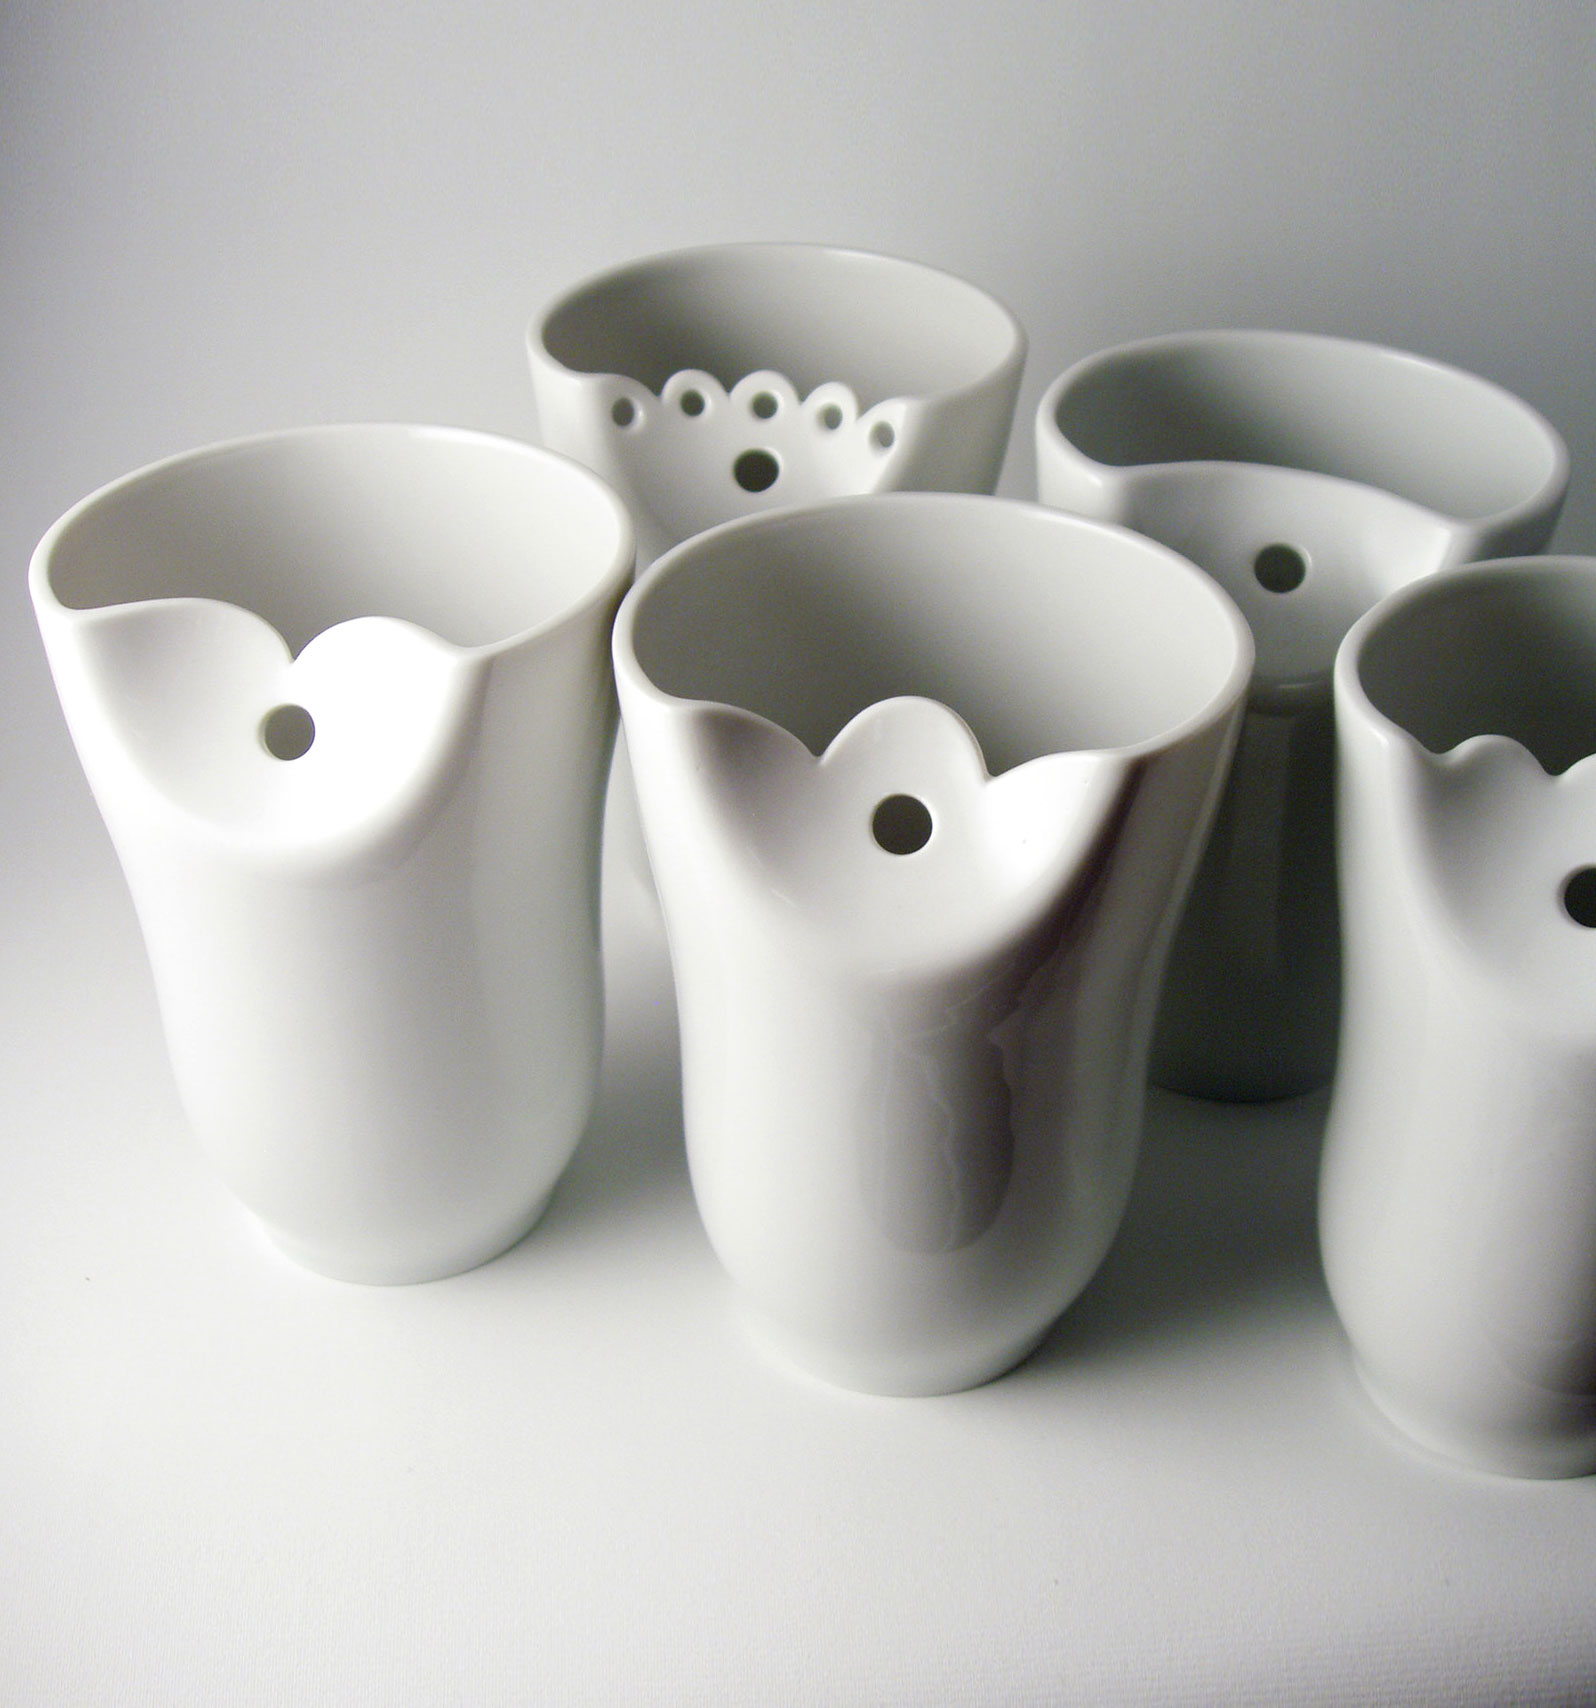 Awesome Design Ideas Handmade Porcelain Cups By Sarka